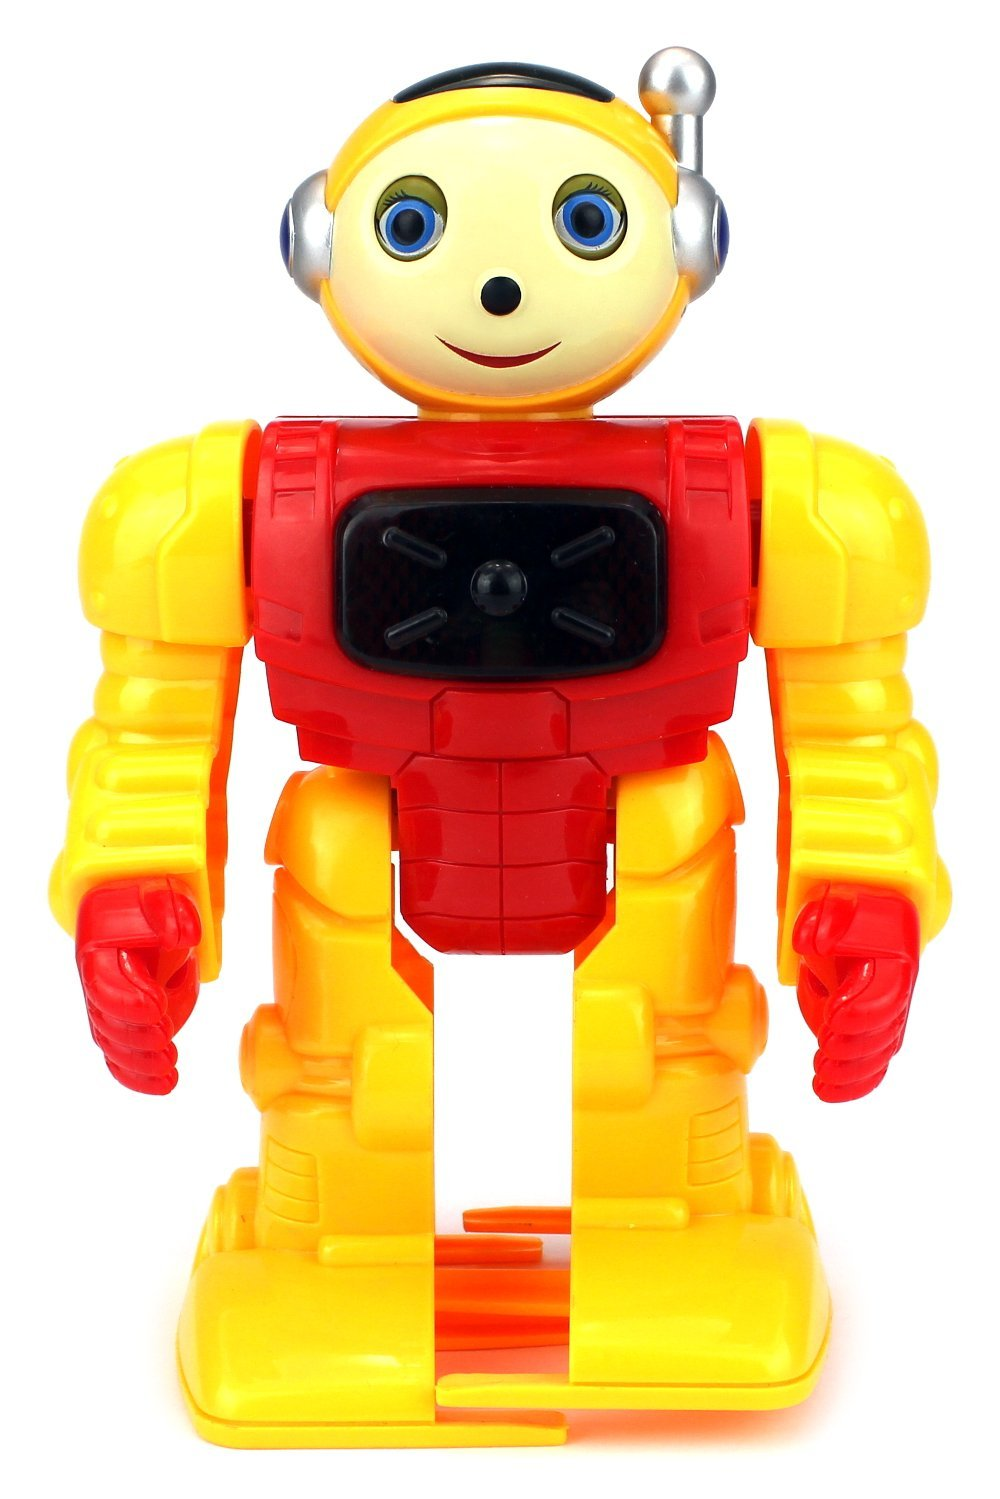 VT Space Robot Warrior Battery Operated Toy Figure w  Flashing Lights, Sounds (Colors May... by Velocity Toys